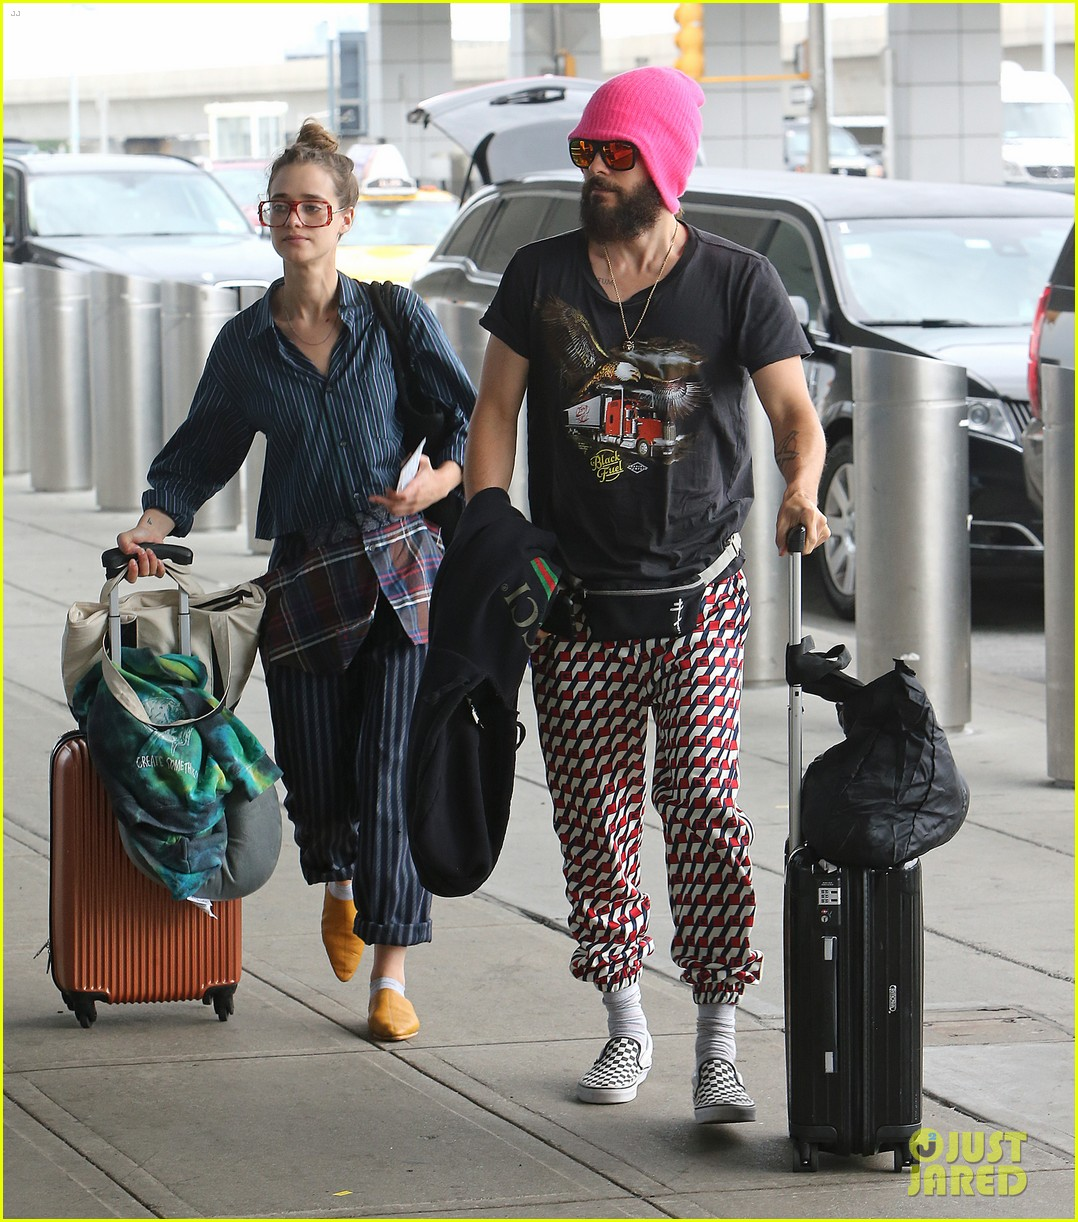 jared leto grabs lunch with rumored girlfriend valery kaufman in nyc 013933039